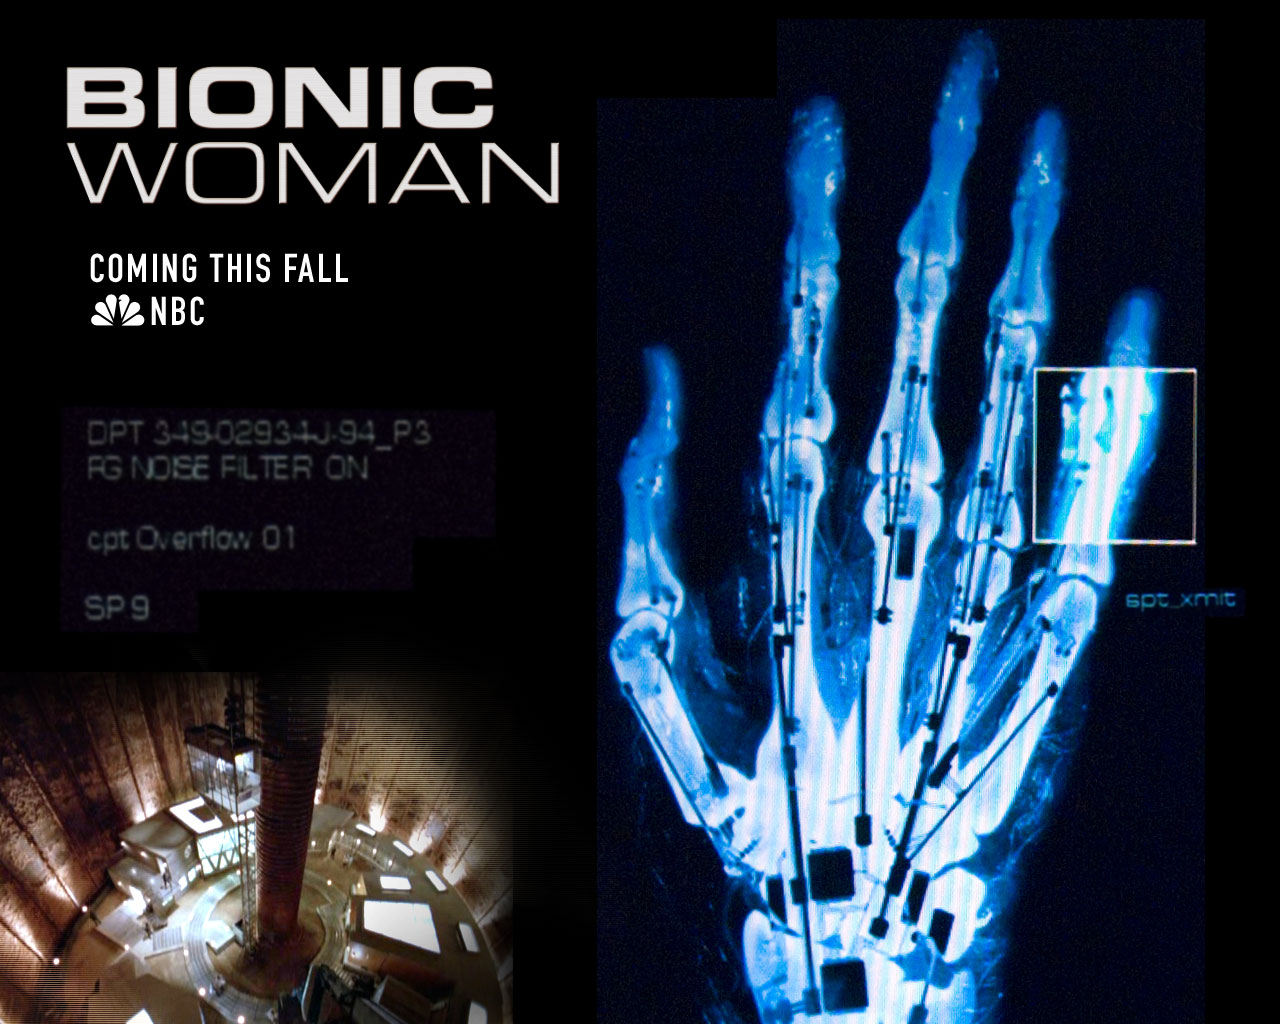 Bionic Woman - Bionic Woman Wallpaper (106868) - Fanpop